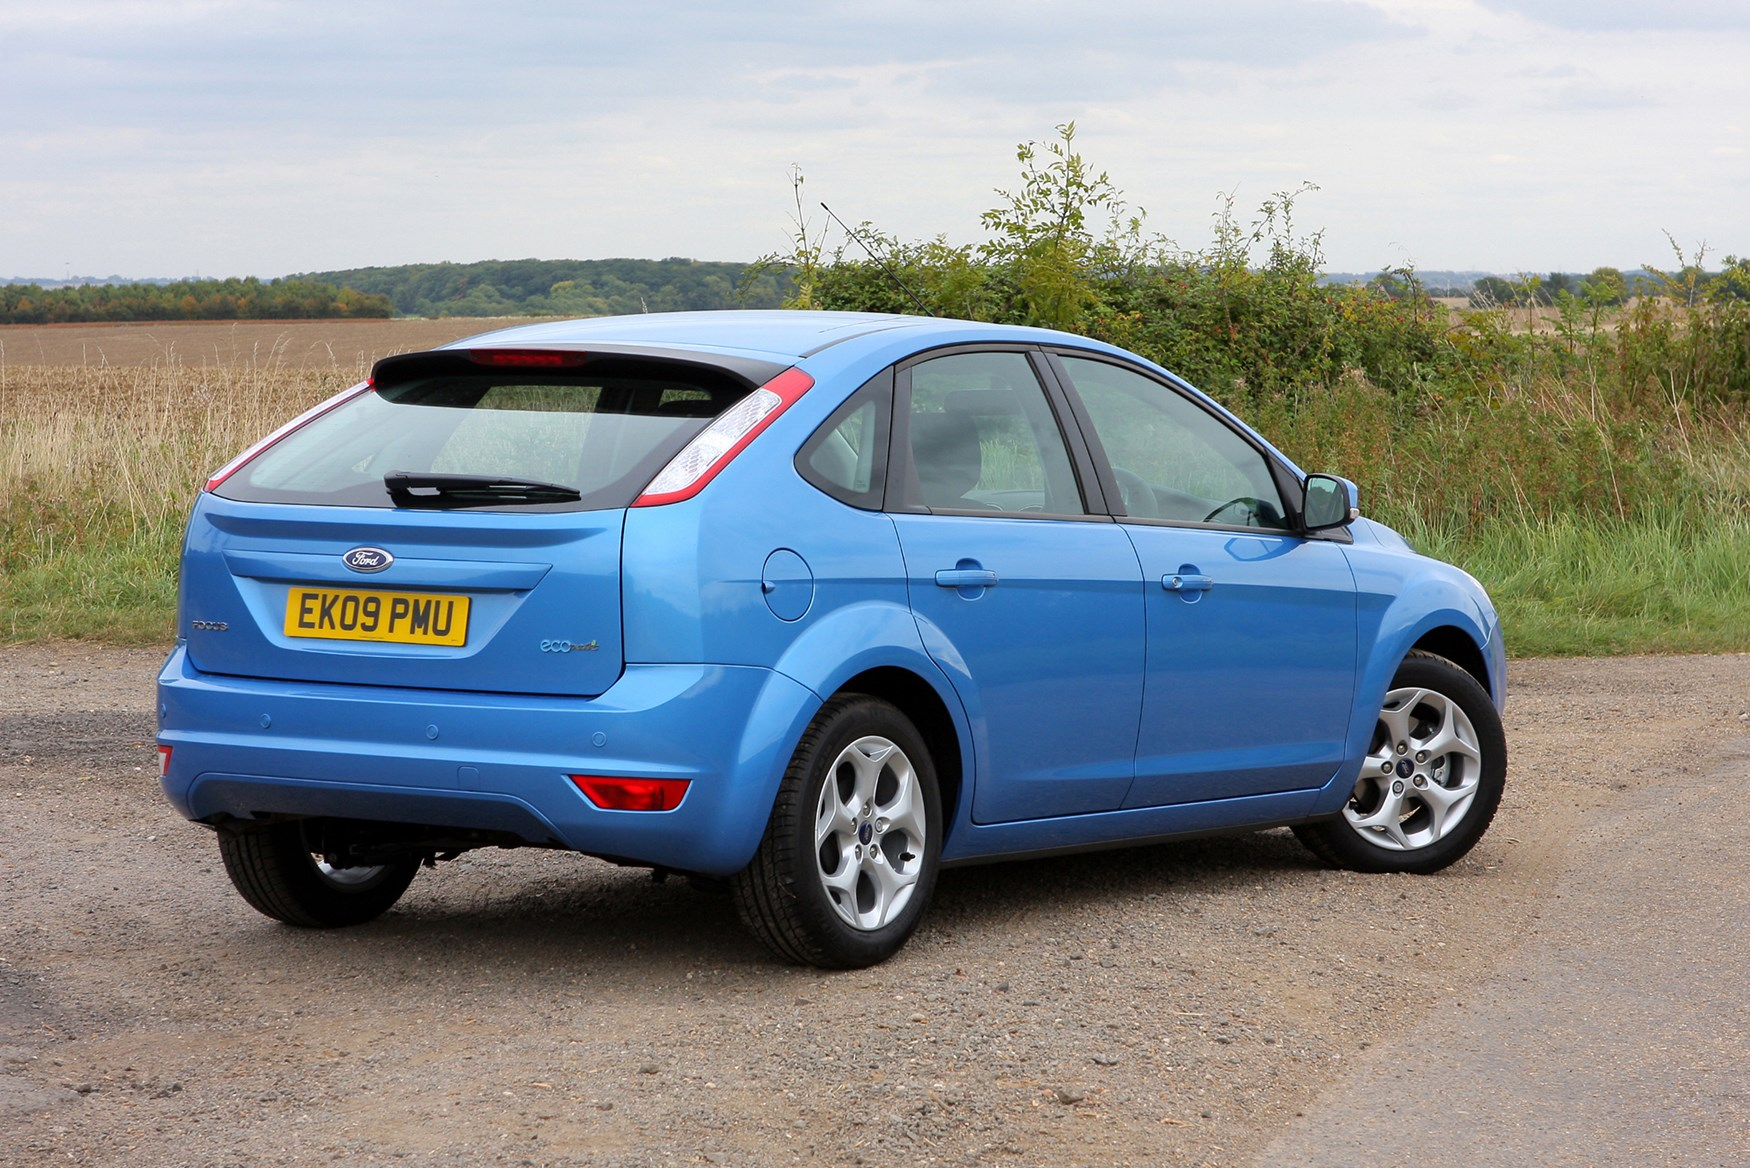 Ford Focus Hatchback (2005 - 2011) Features, Equipment and ...